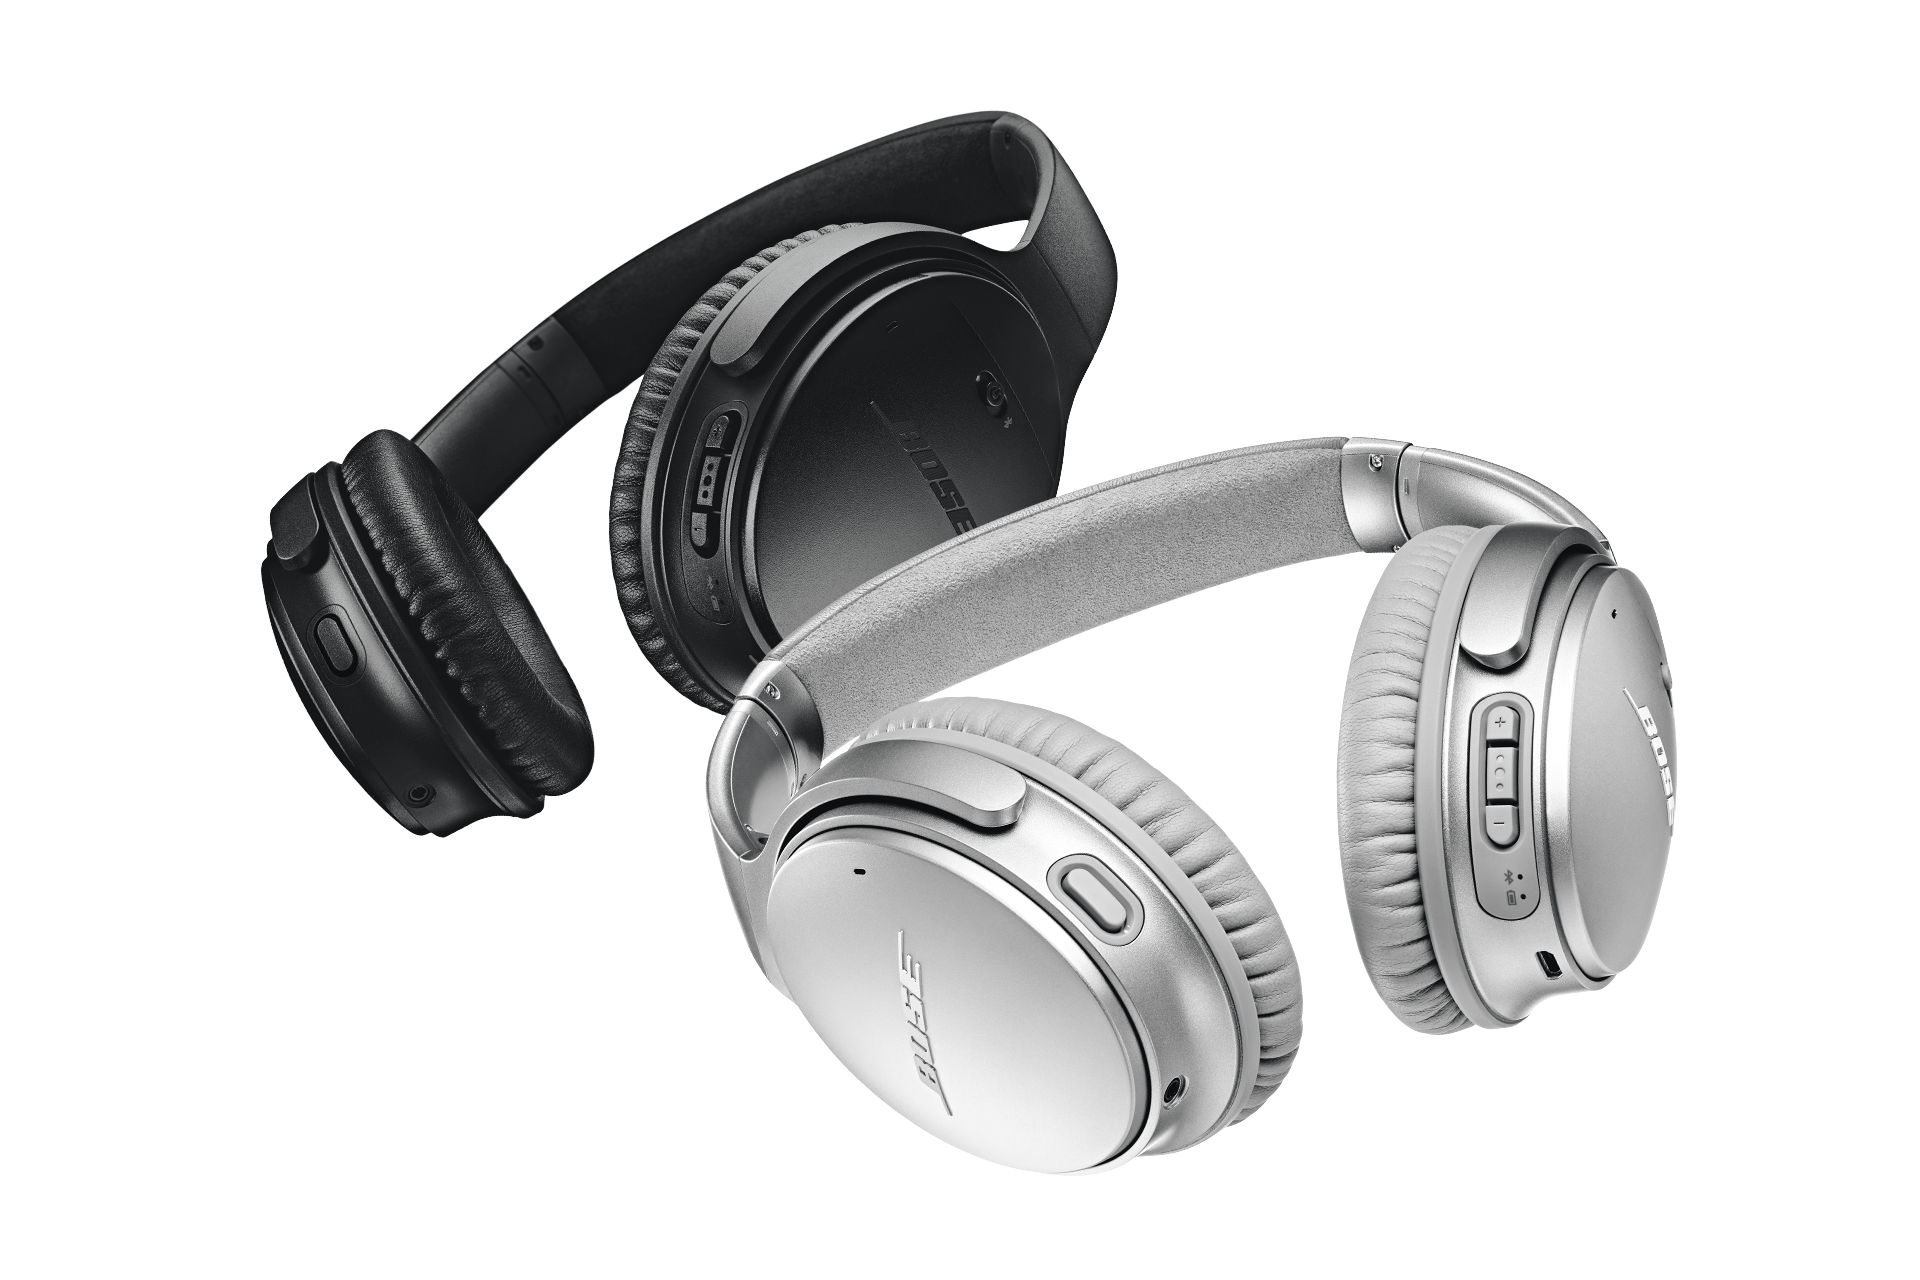 Lose The Noise And Wires With Bose Quietcomfort 35 Wireless Smart Headphones Get World Class Noise Wireless Headphones Noise Cancelling Headphones Headphones